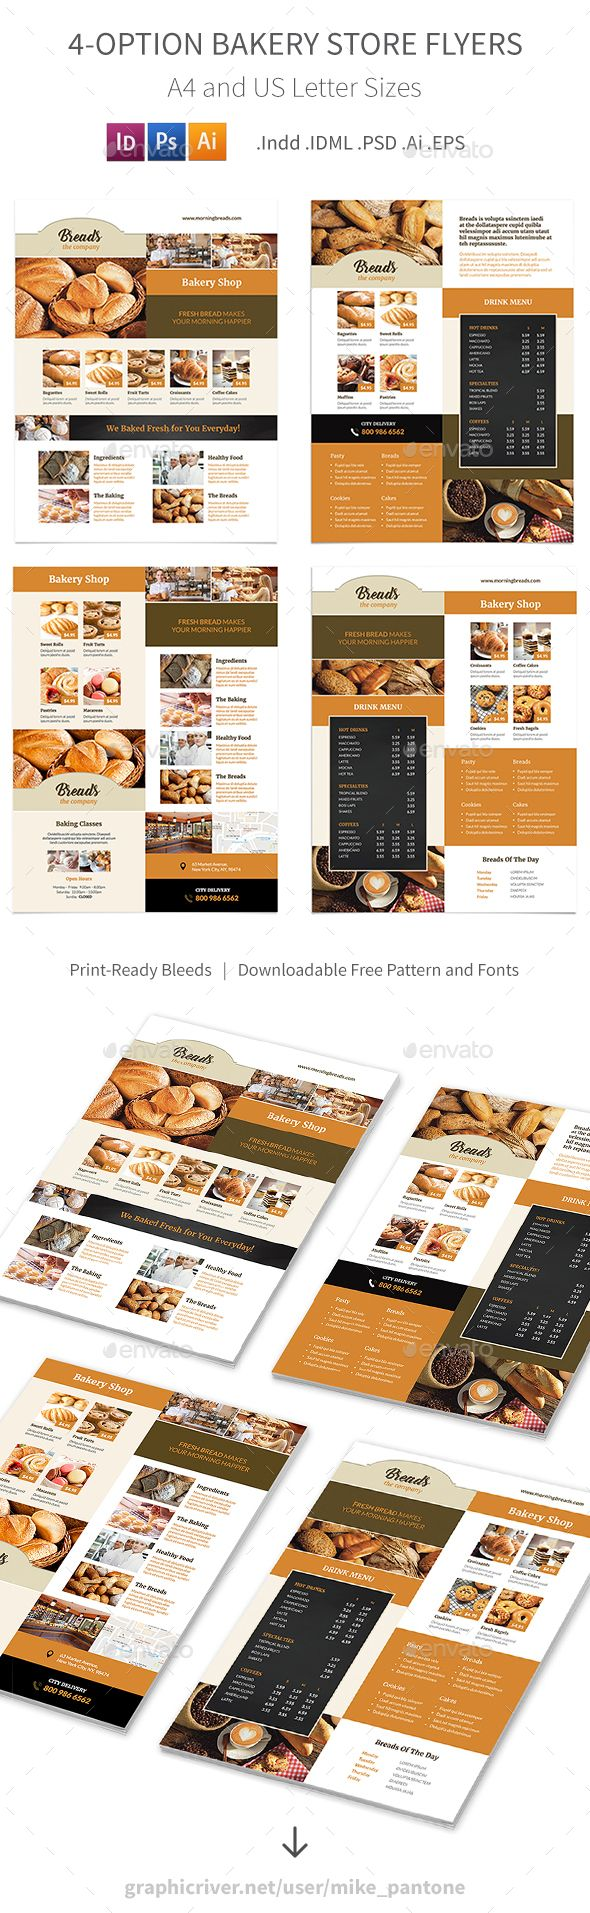 Bakery Store Flyers u2013 4 Options 32